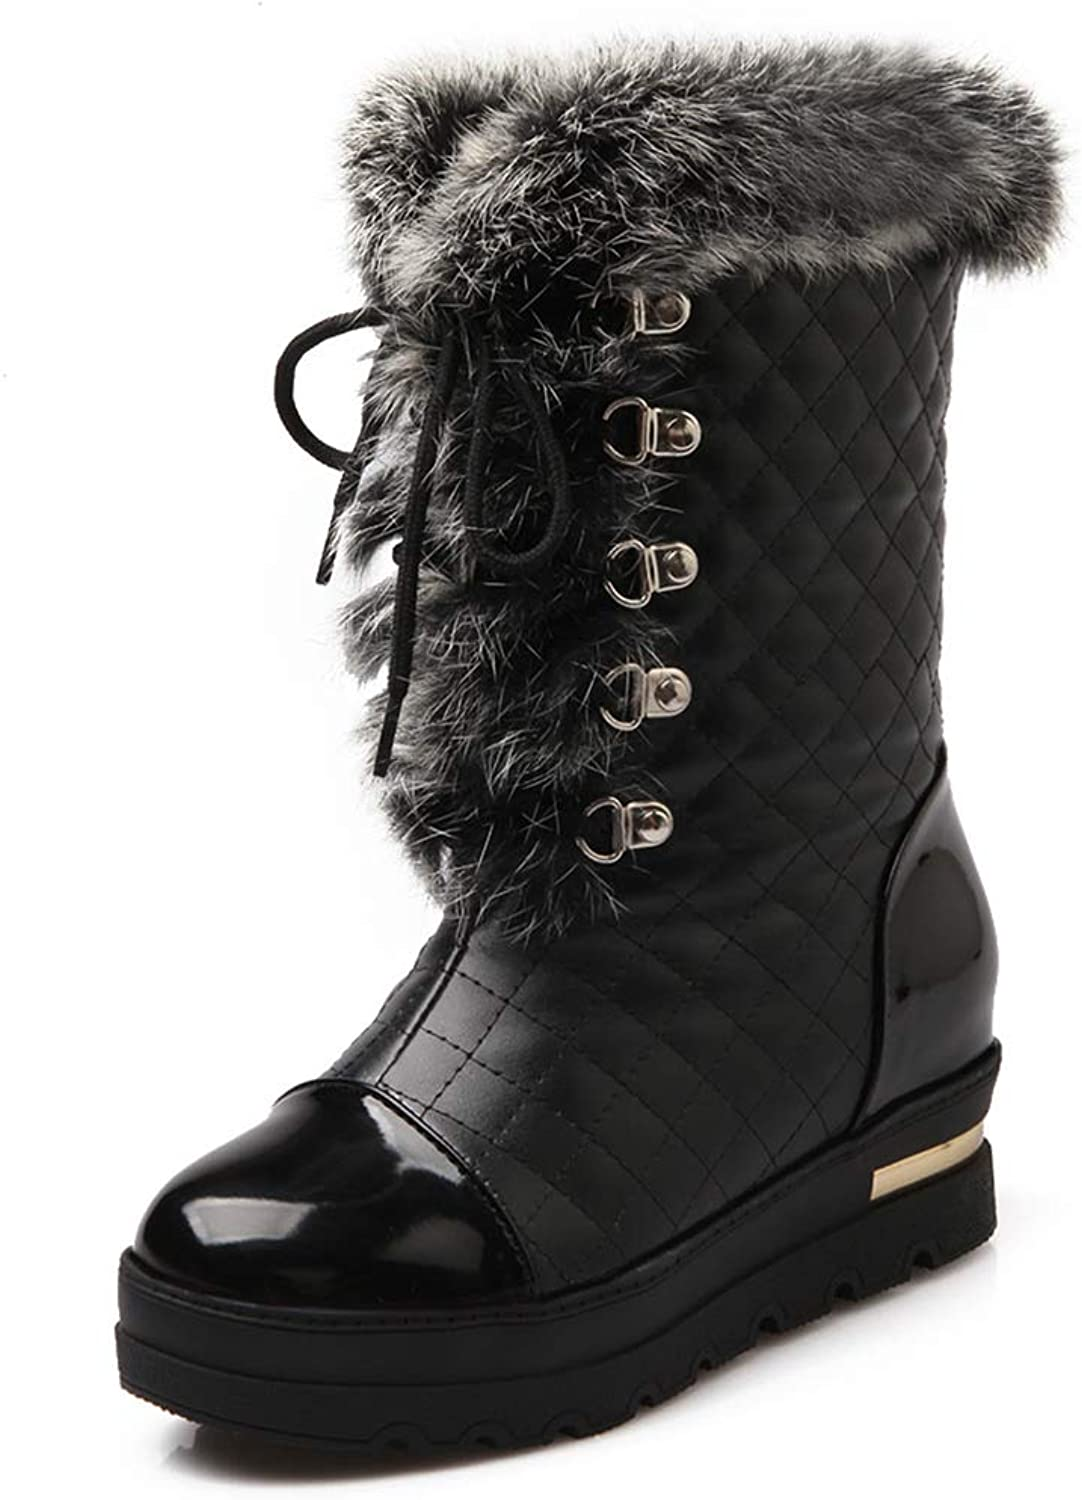 KingRover Women's Patent Leather Round Toe Lace up Mid Heel Boots with Fur